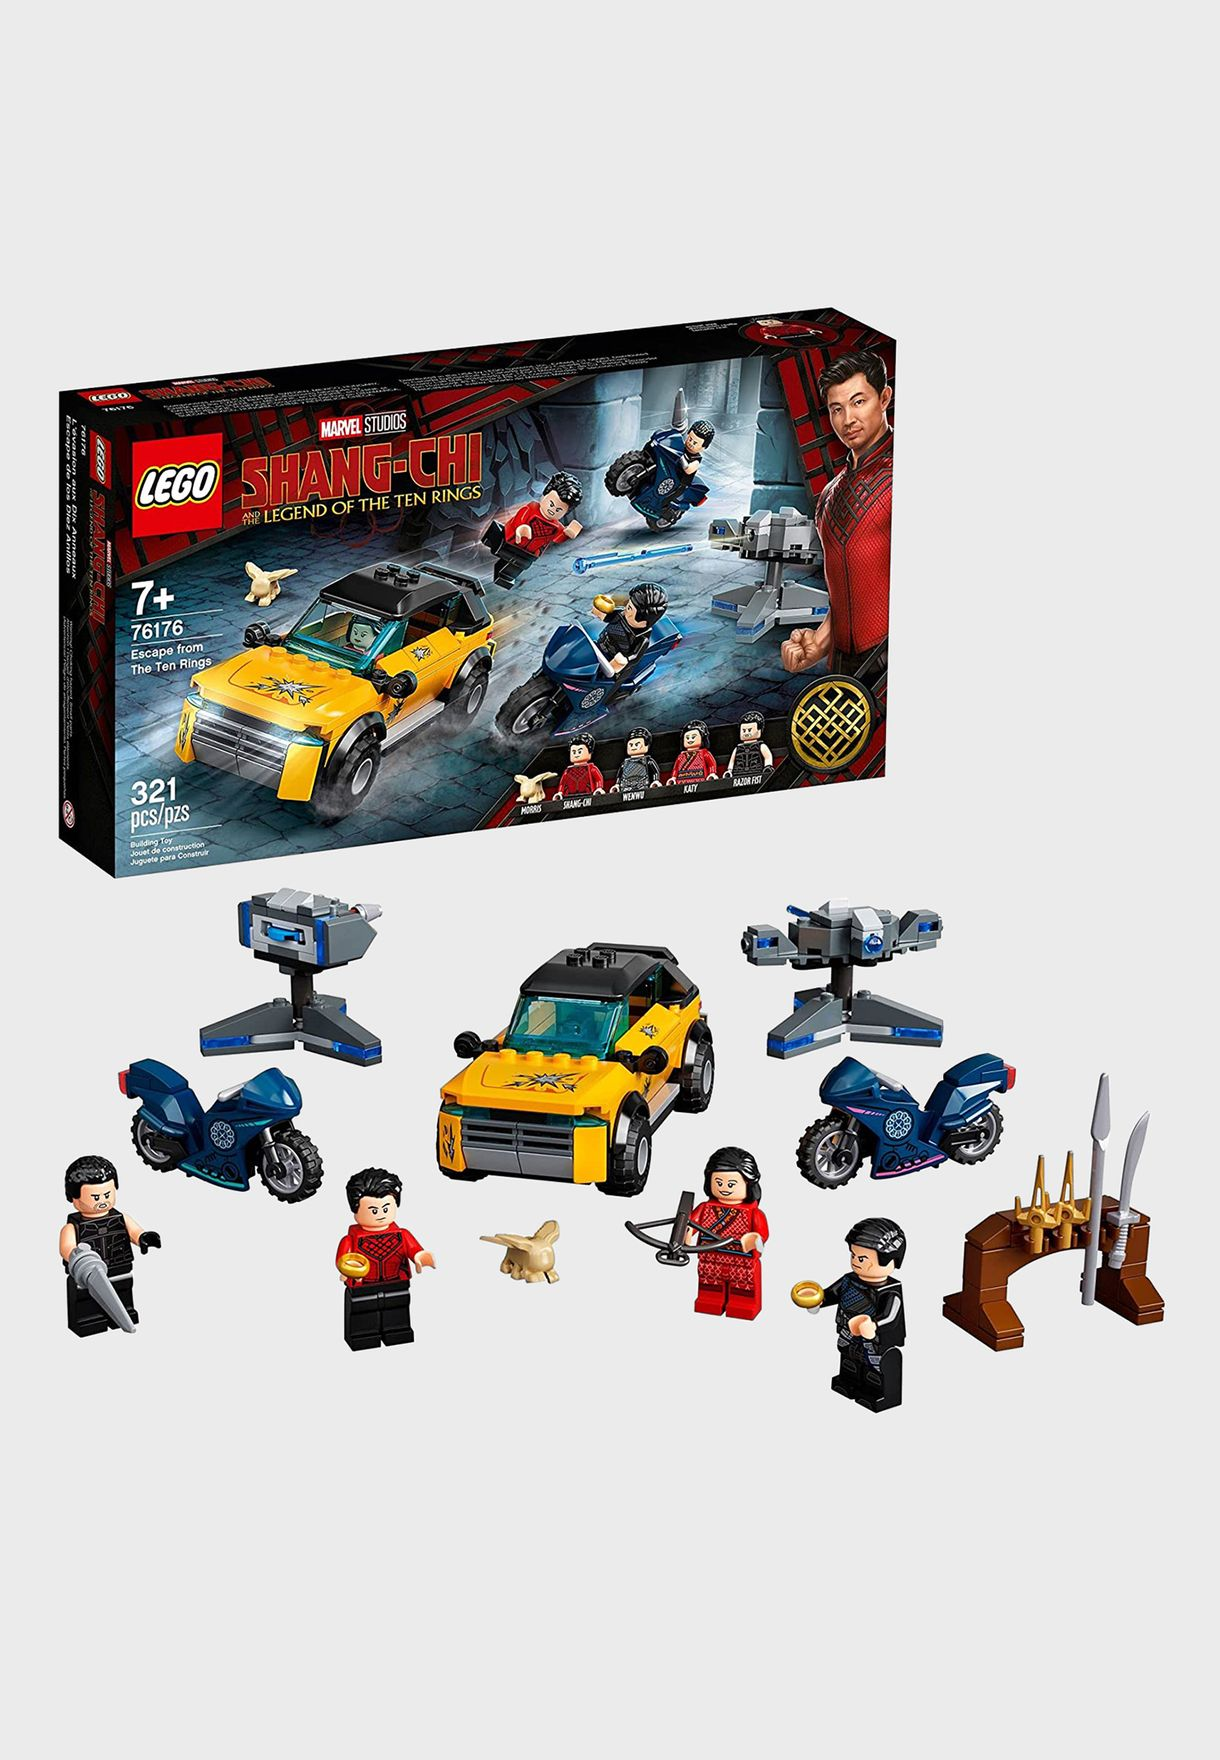 Marvel Shang-Chi Escape From The Ten Rings Set